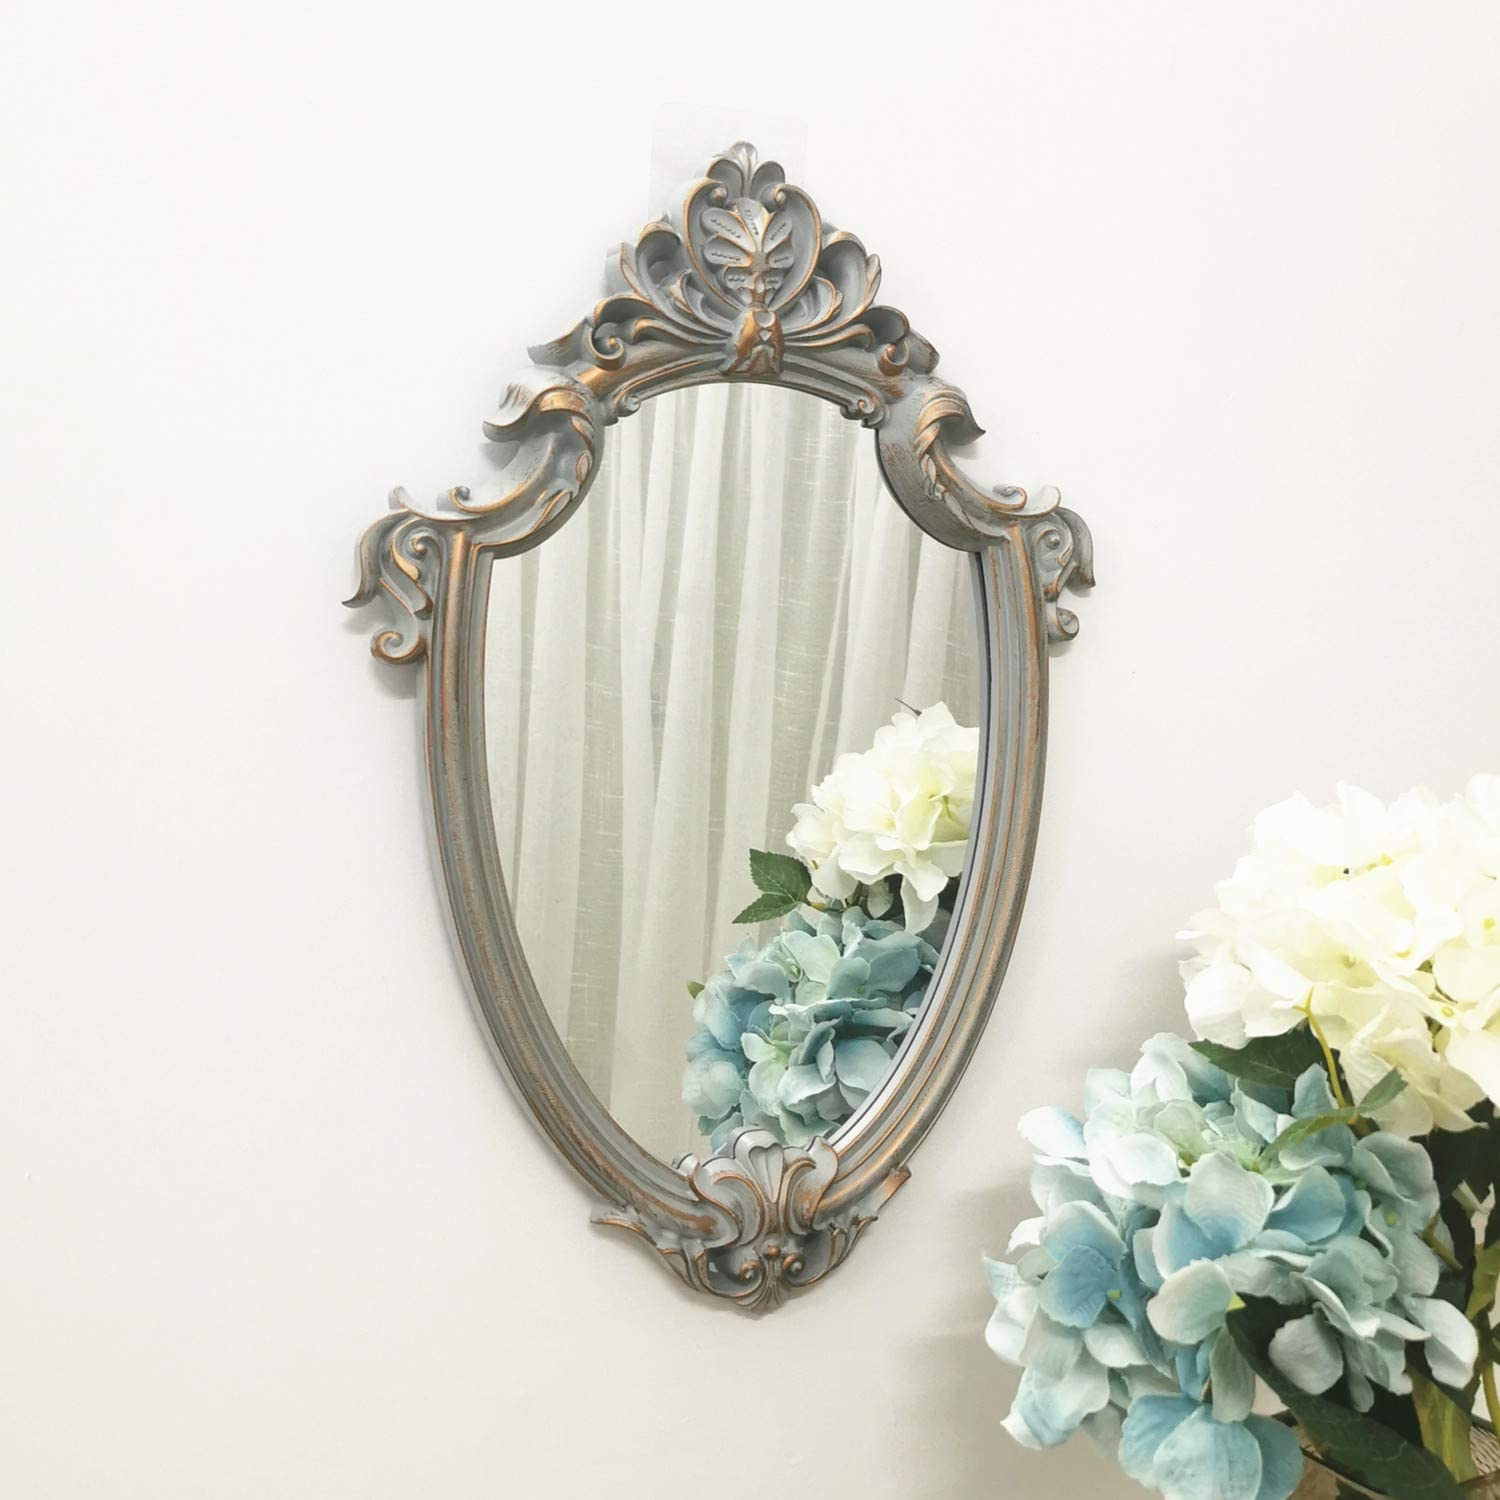 Yash Decorative Wall Mirror, Vintage Hanging Mirrors for Bedroom Living-Room Decor, Golden Gray